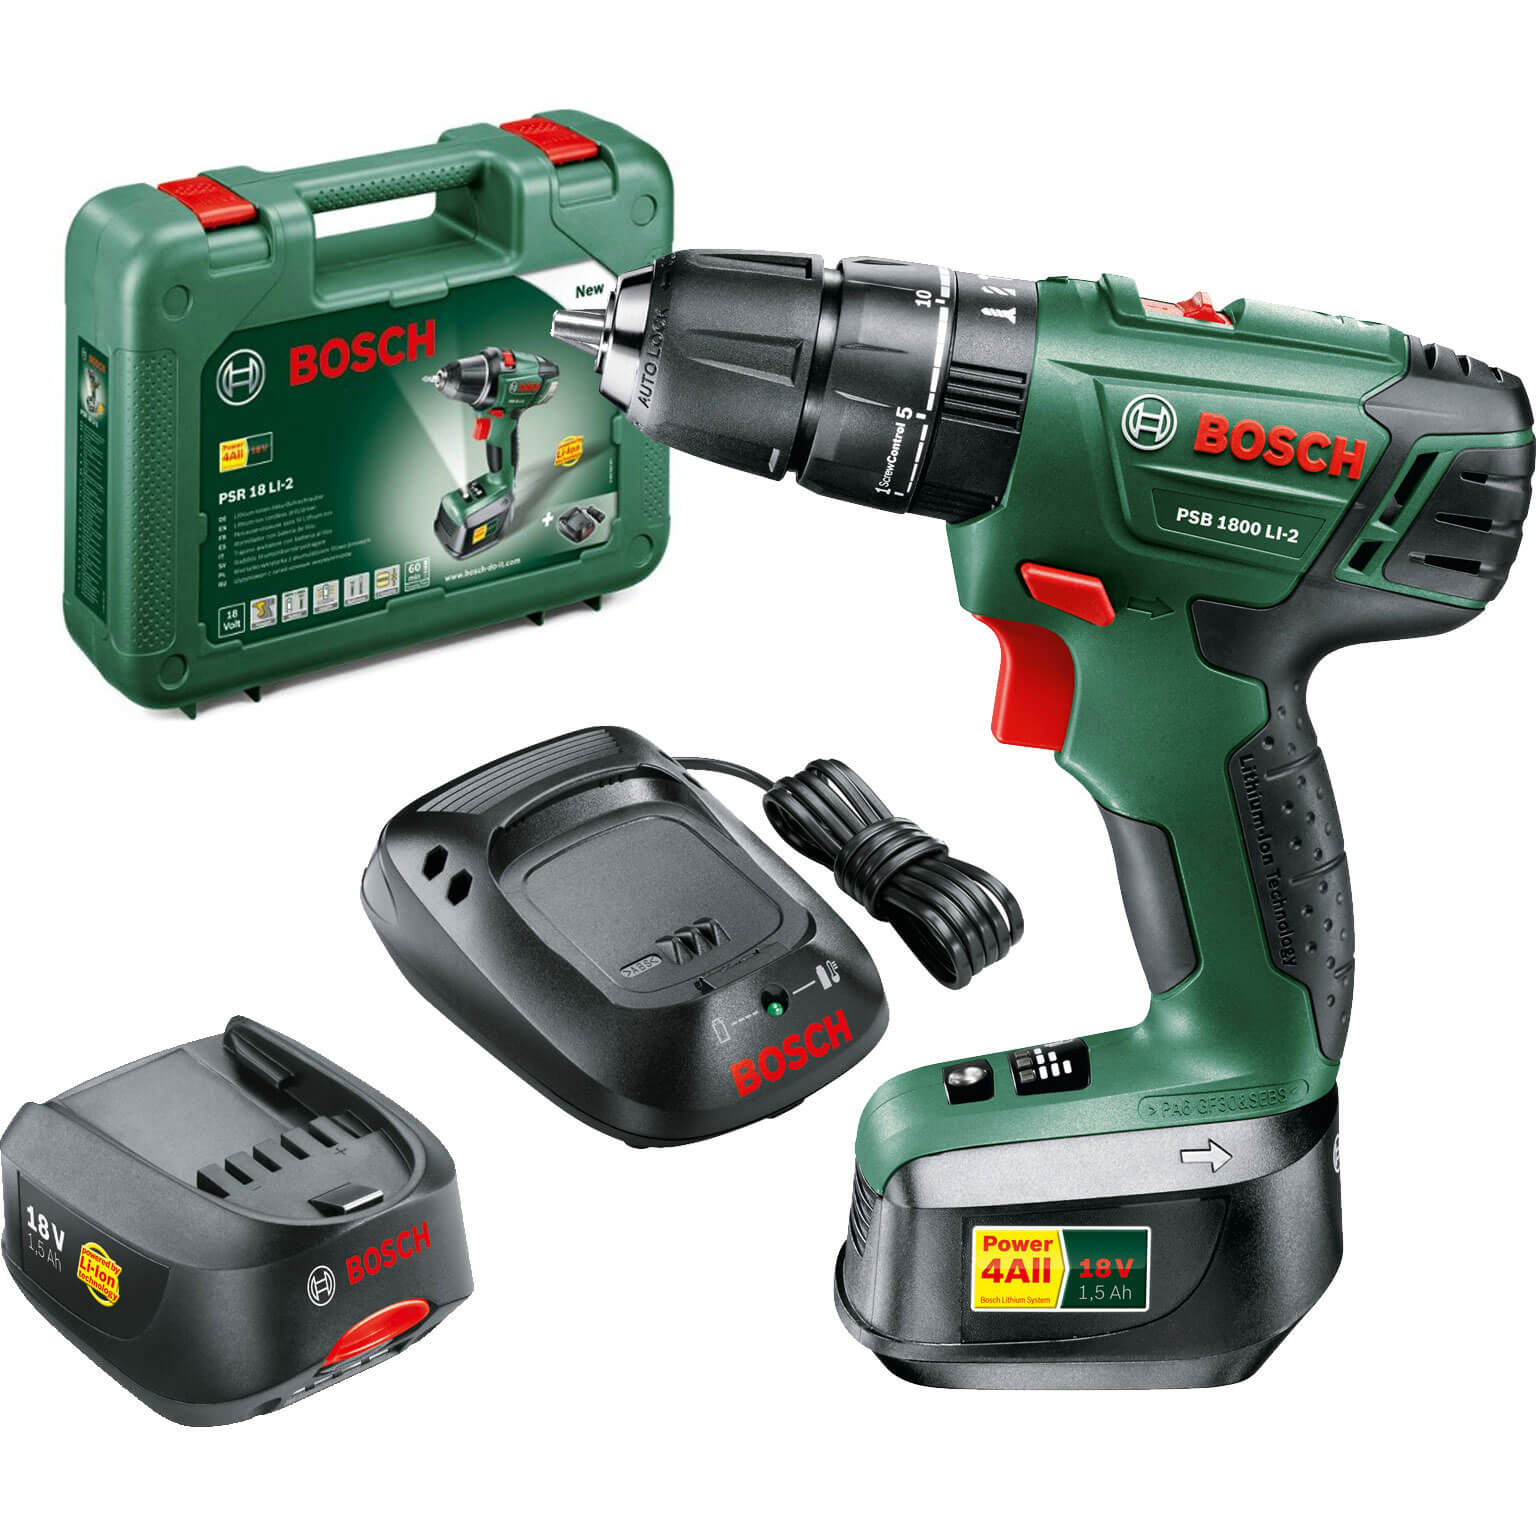 combi drills bosch gsb 18 v li 18v cordless dynamicseries 2 speed combi drill with 1 lithium. Black Bedroom Furniture Sets. Home Design Ideas